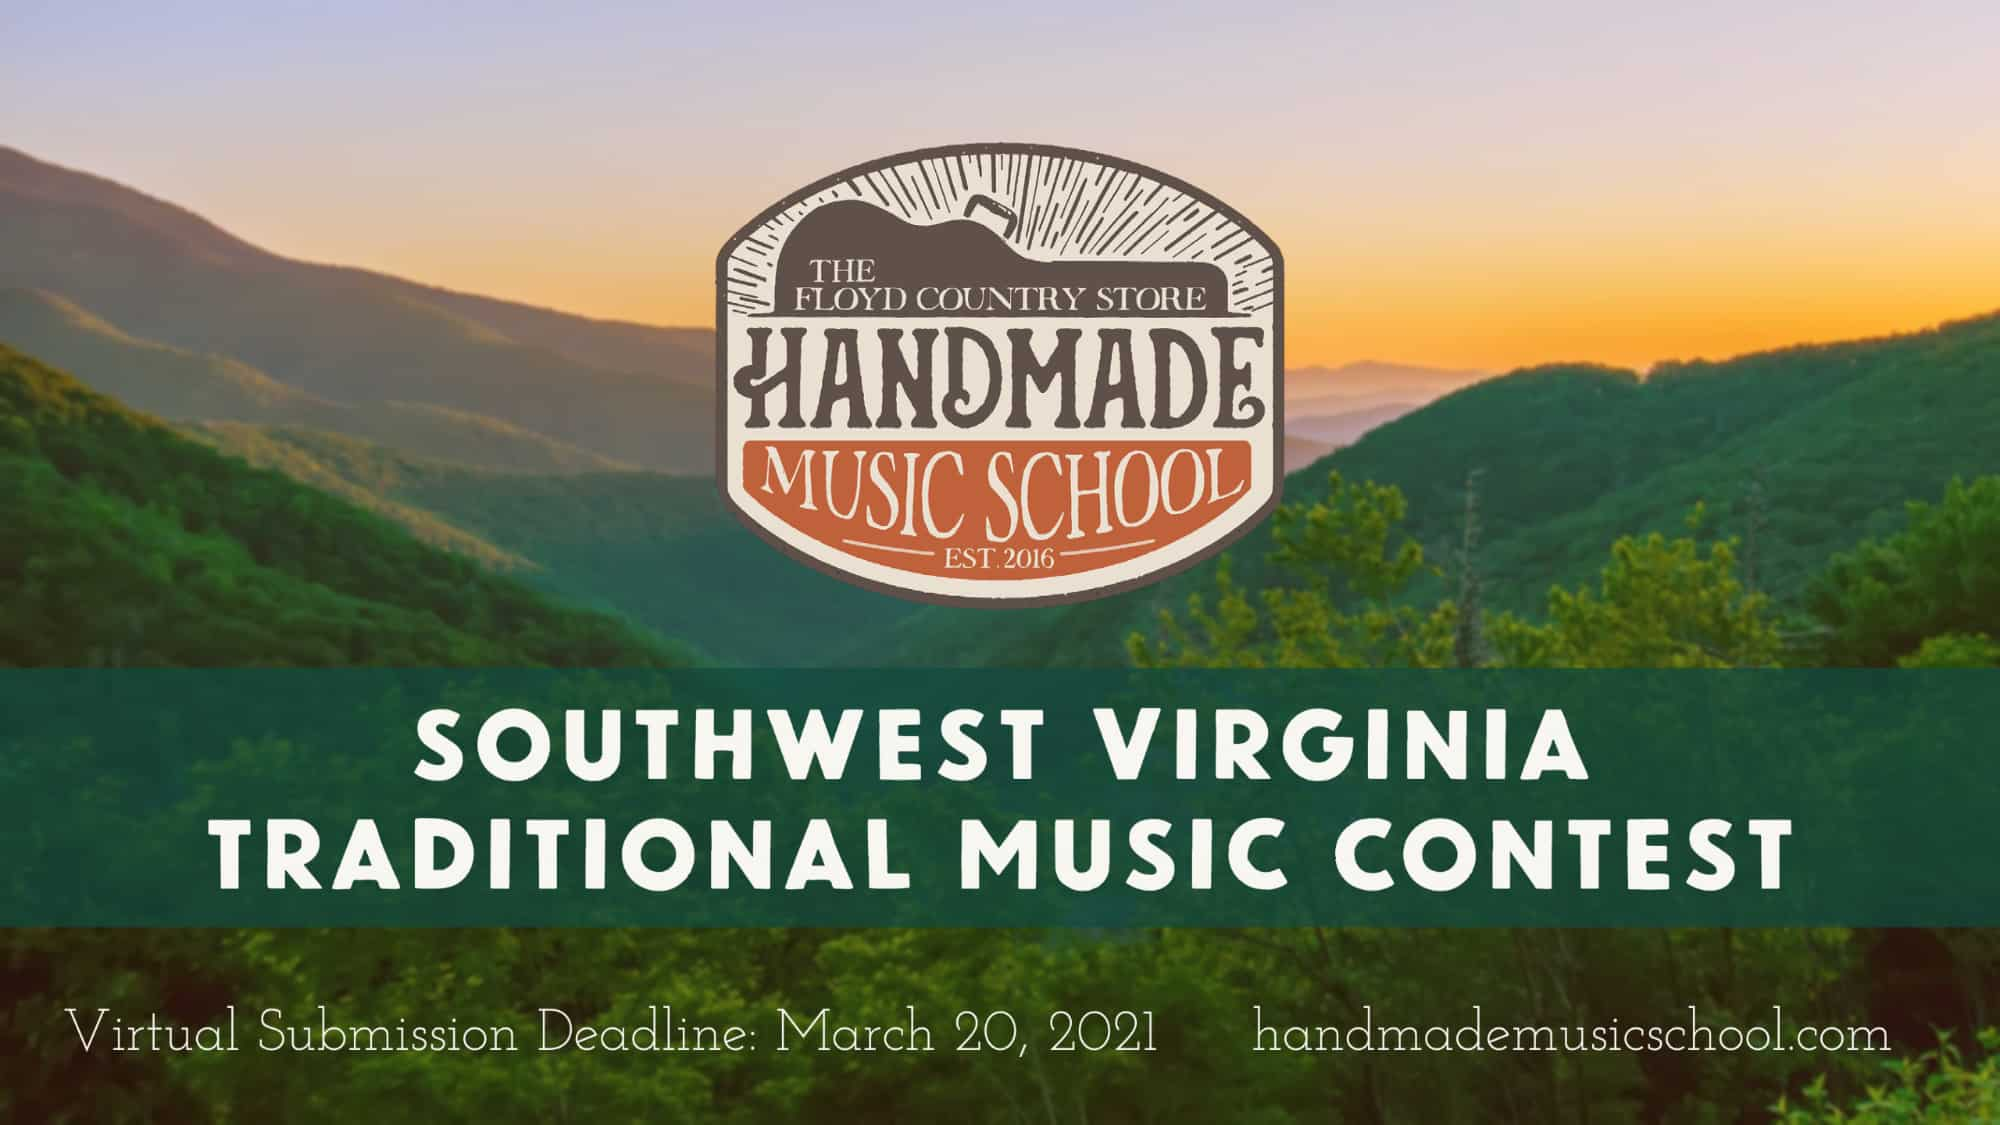 Southwest Virginia Traditional Music Contest 2021